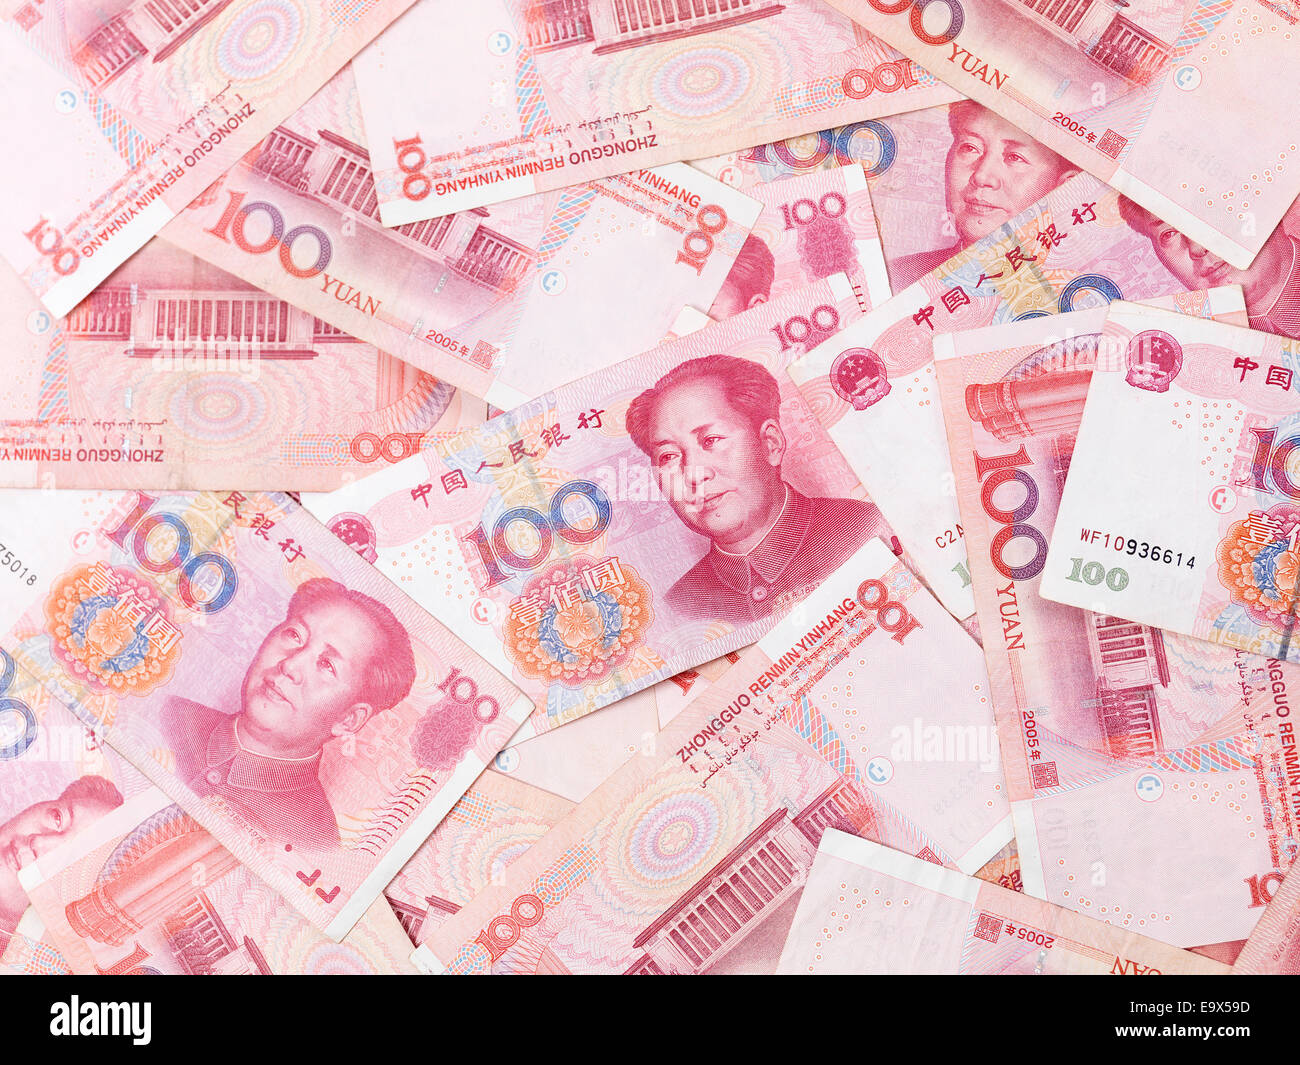 Chinese Yuan 100 bills Renminbi money currency background - Stock Image